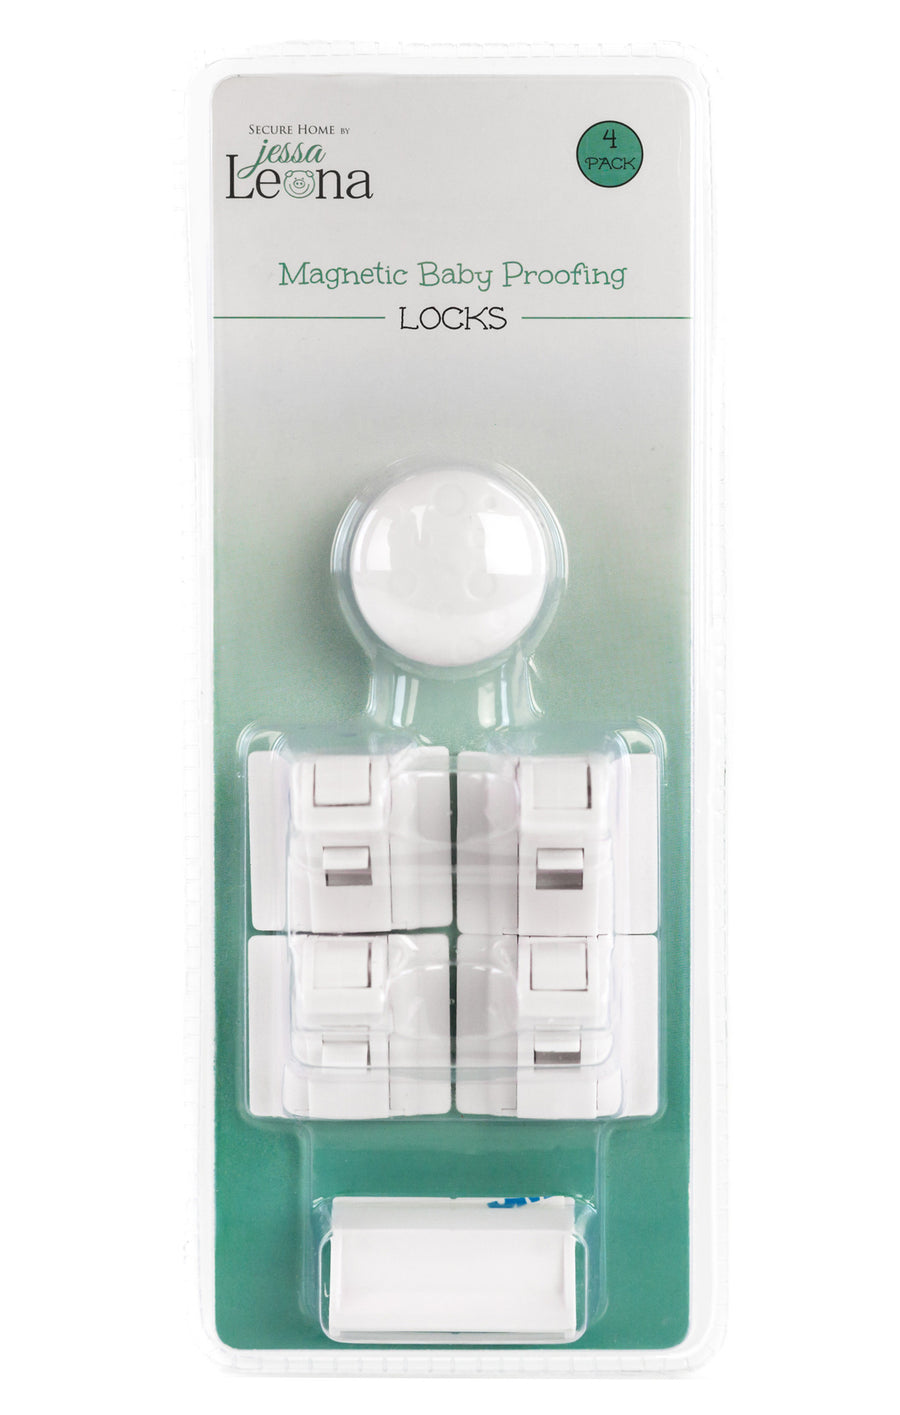 Baby Safety Magnetic Cabinet Locks - 4 Lock & 1 Key Set White - Jessa Leona Baby